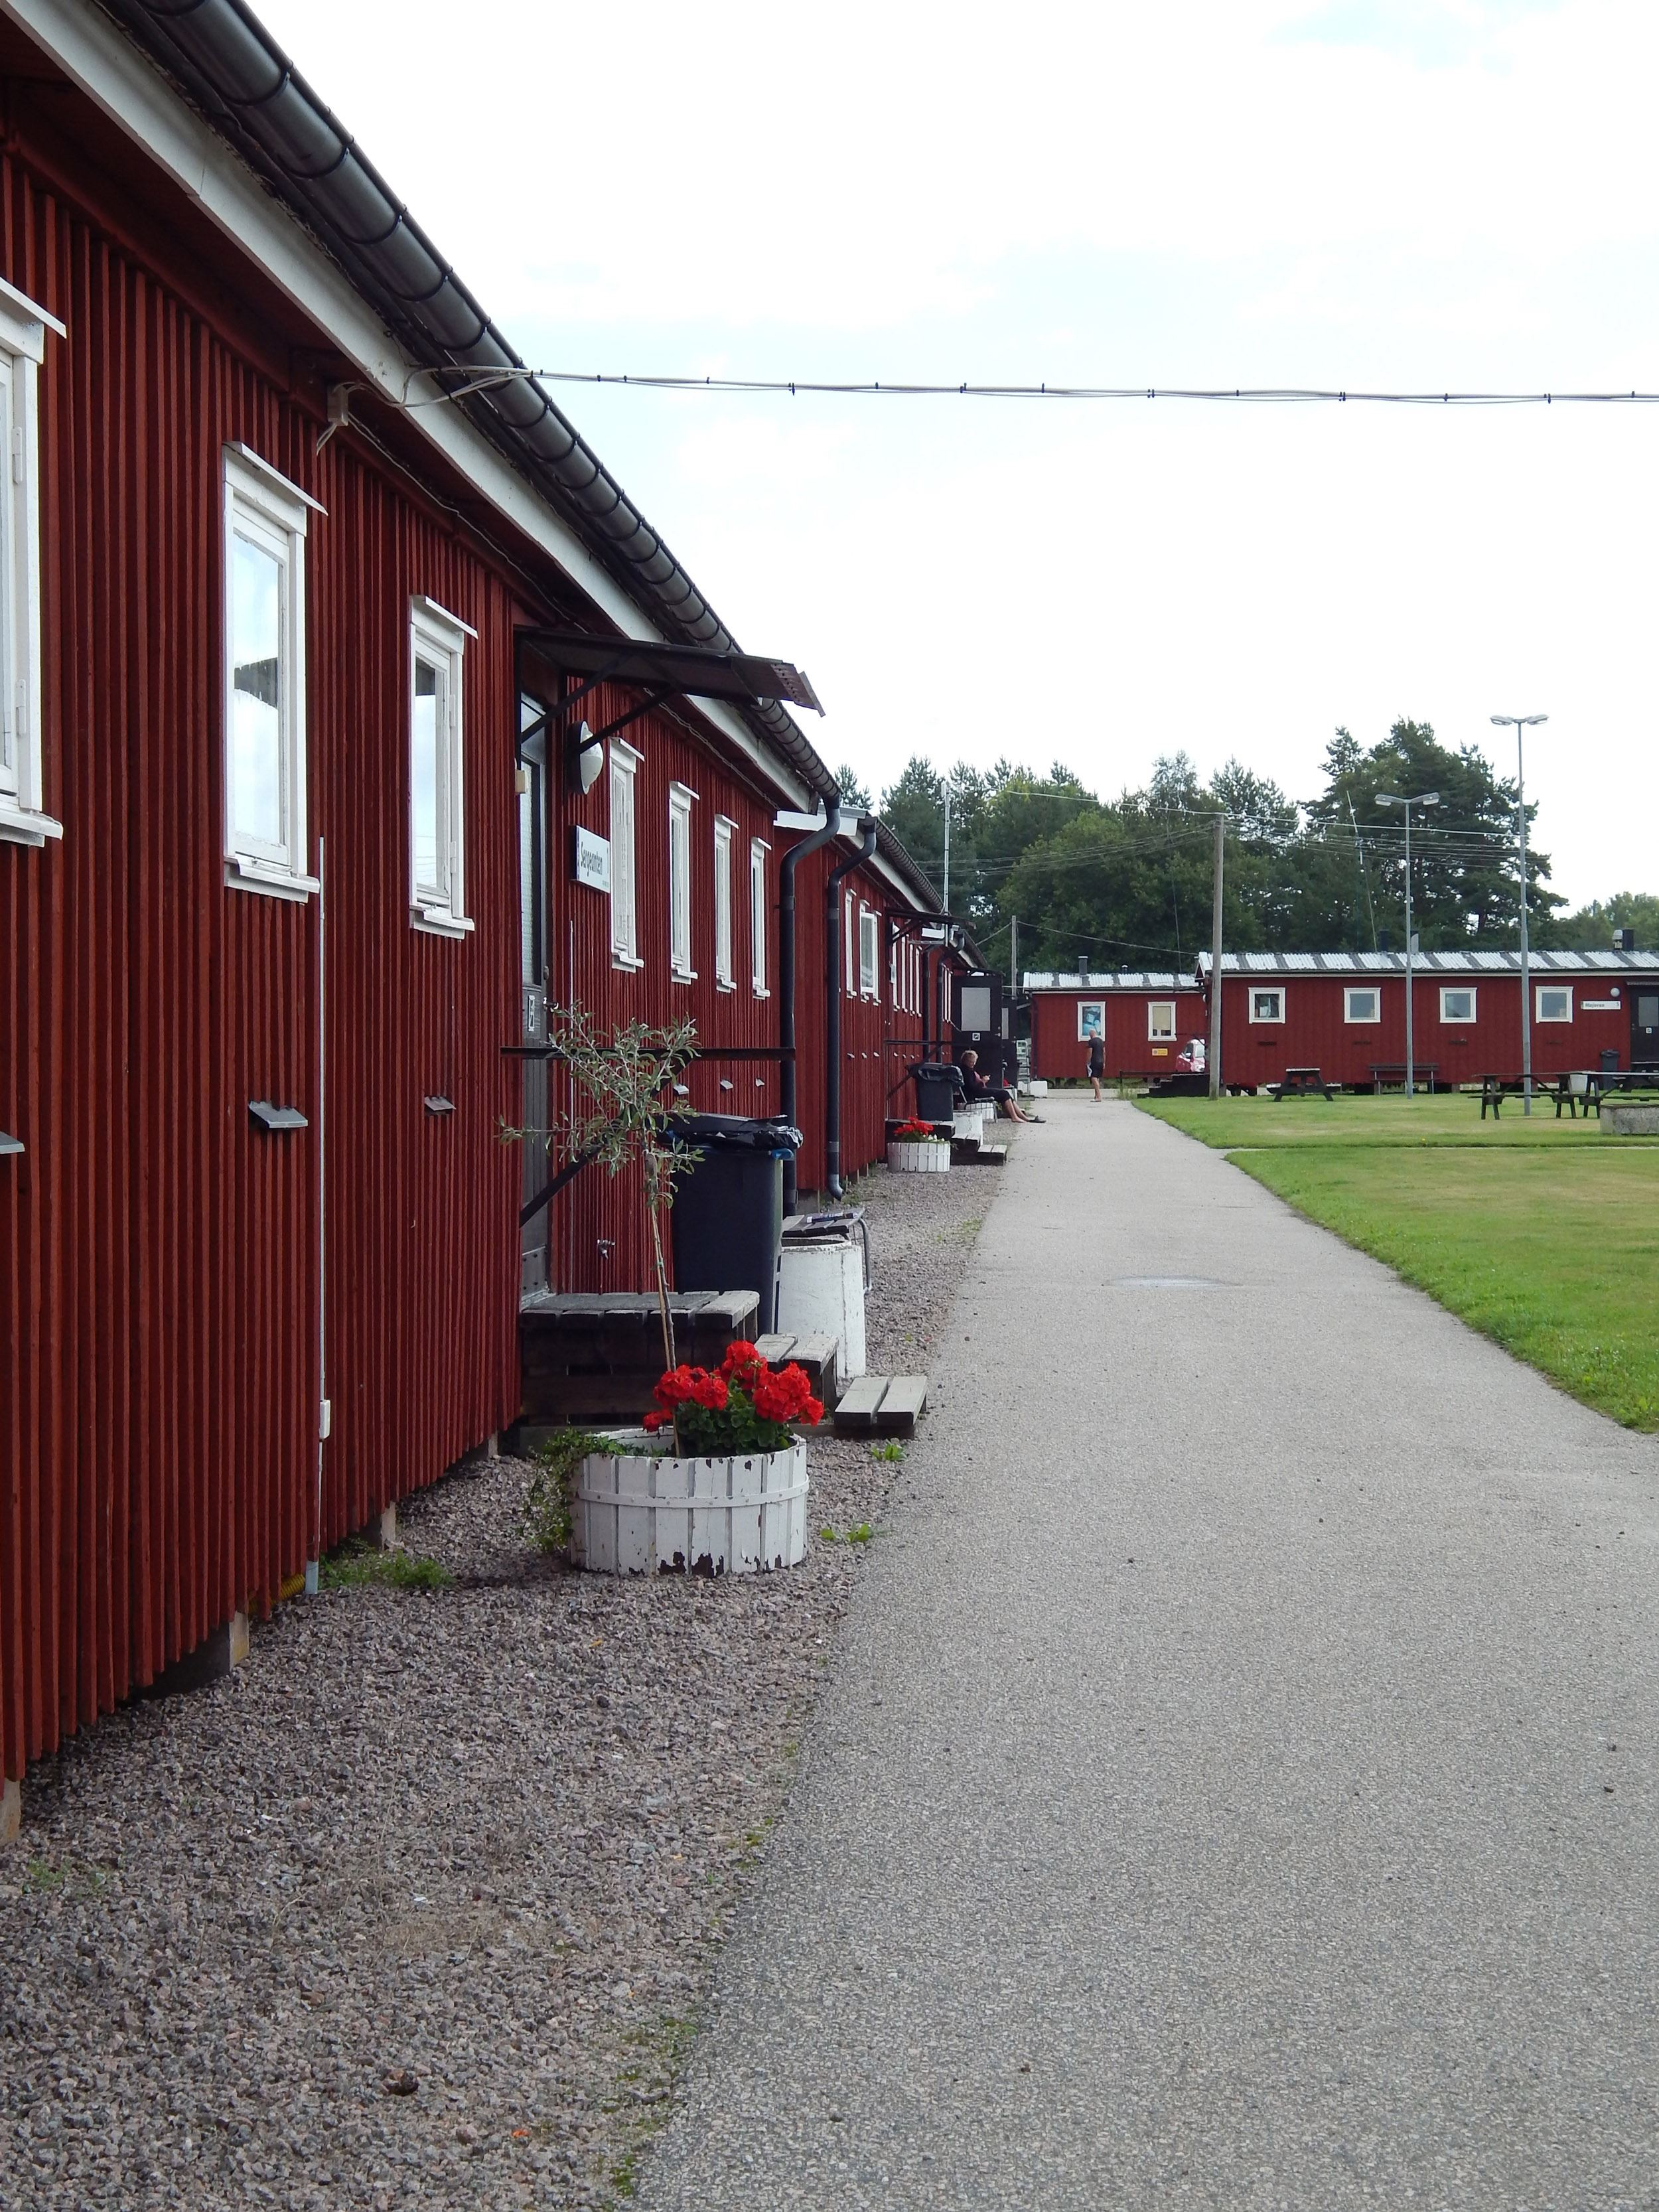 Tånga Hed Camping and Hostel